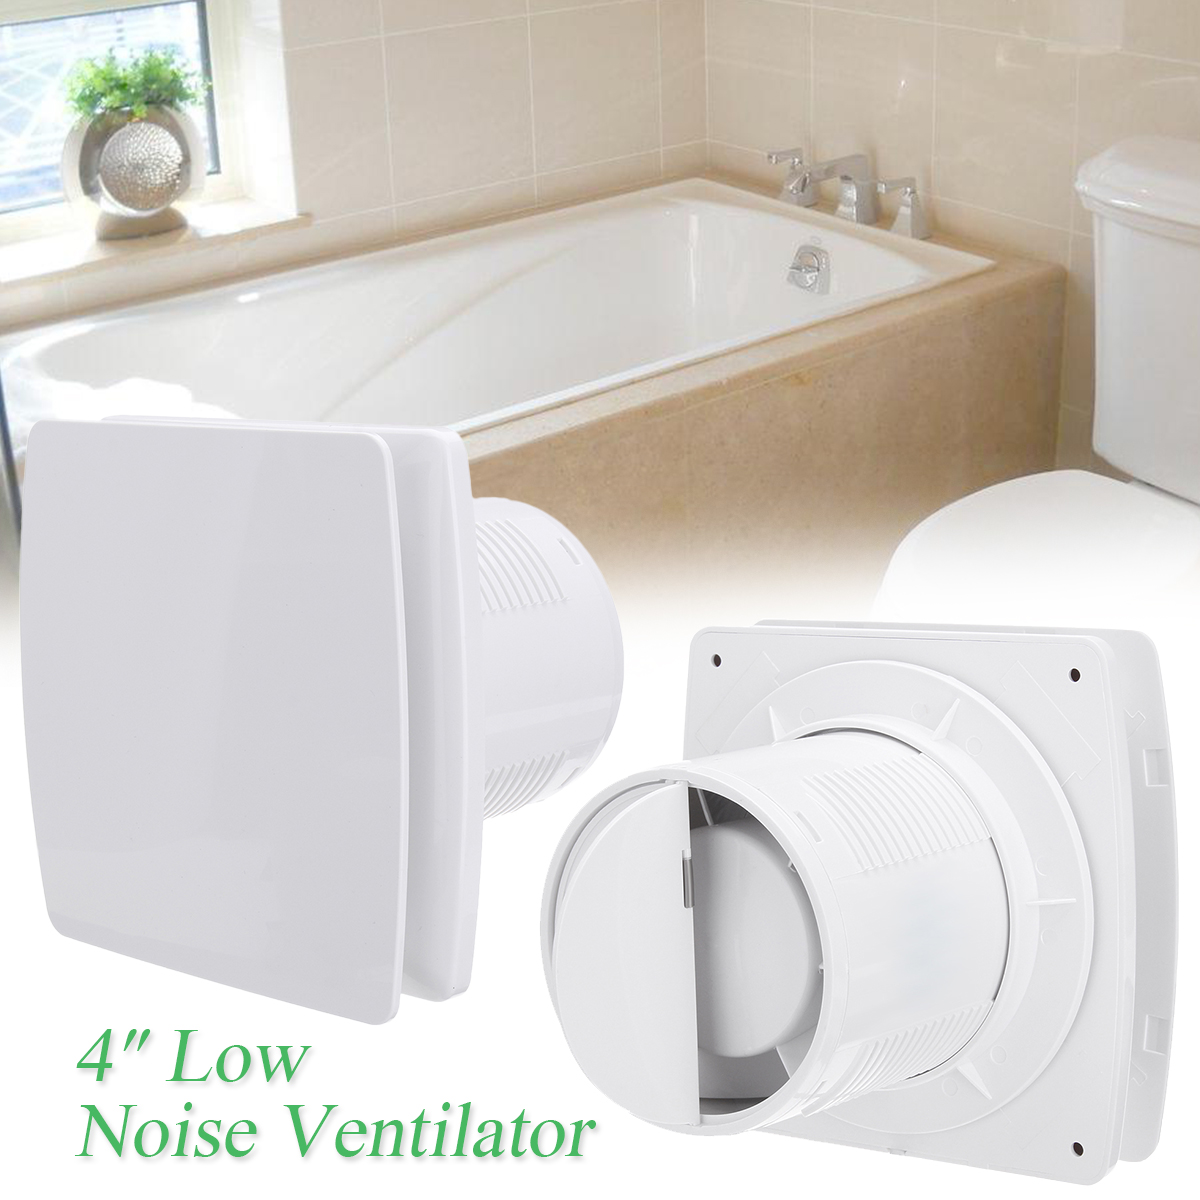 12W 4/6 inch Home Bathroom Kitchen Bedroom ToiletLow Noise 220V Ventilator de techo Fan Hotel Wall Silent Extractor Exhaust Fan integrated ceiling ventilator bathroom wc kitchen silent exhaust fan